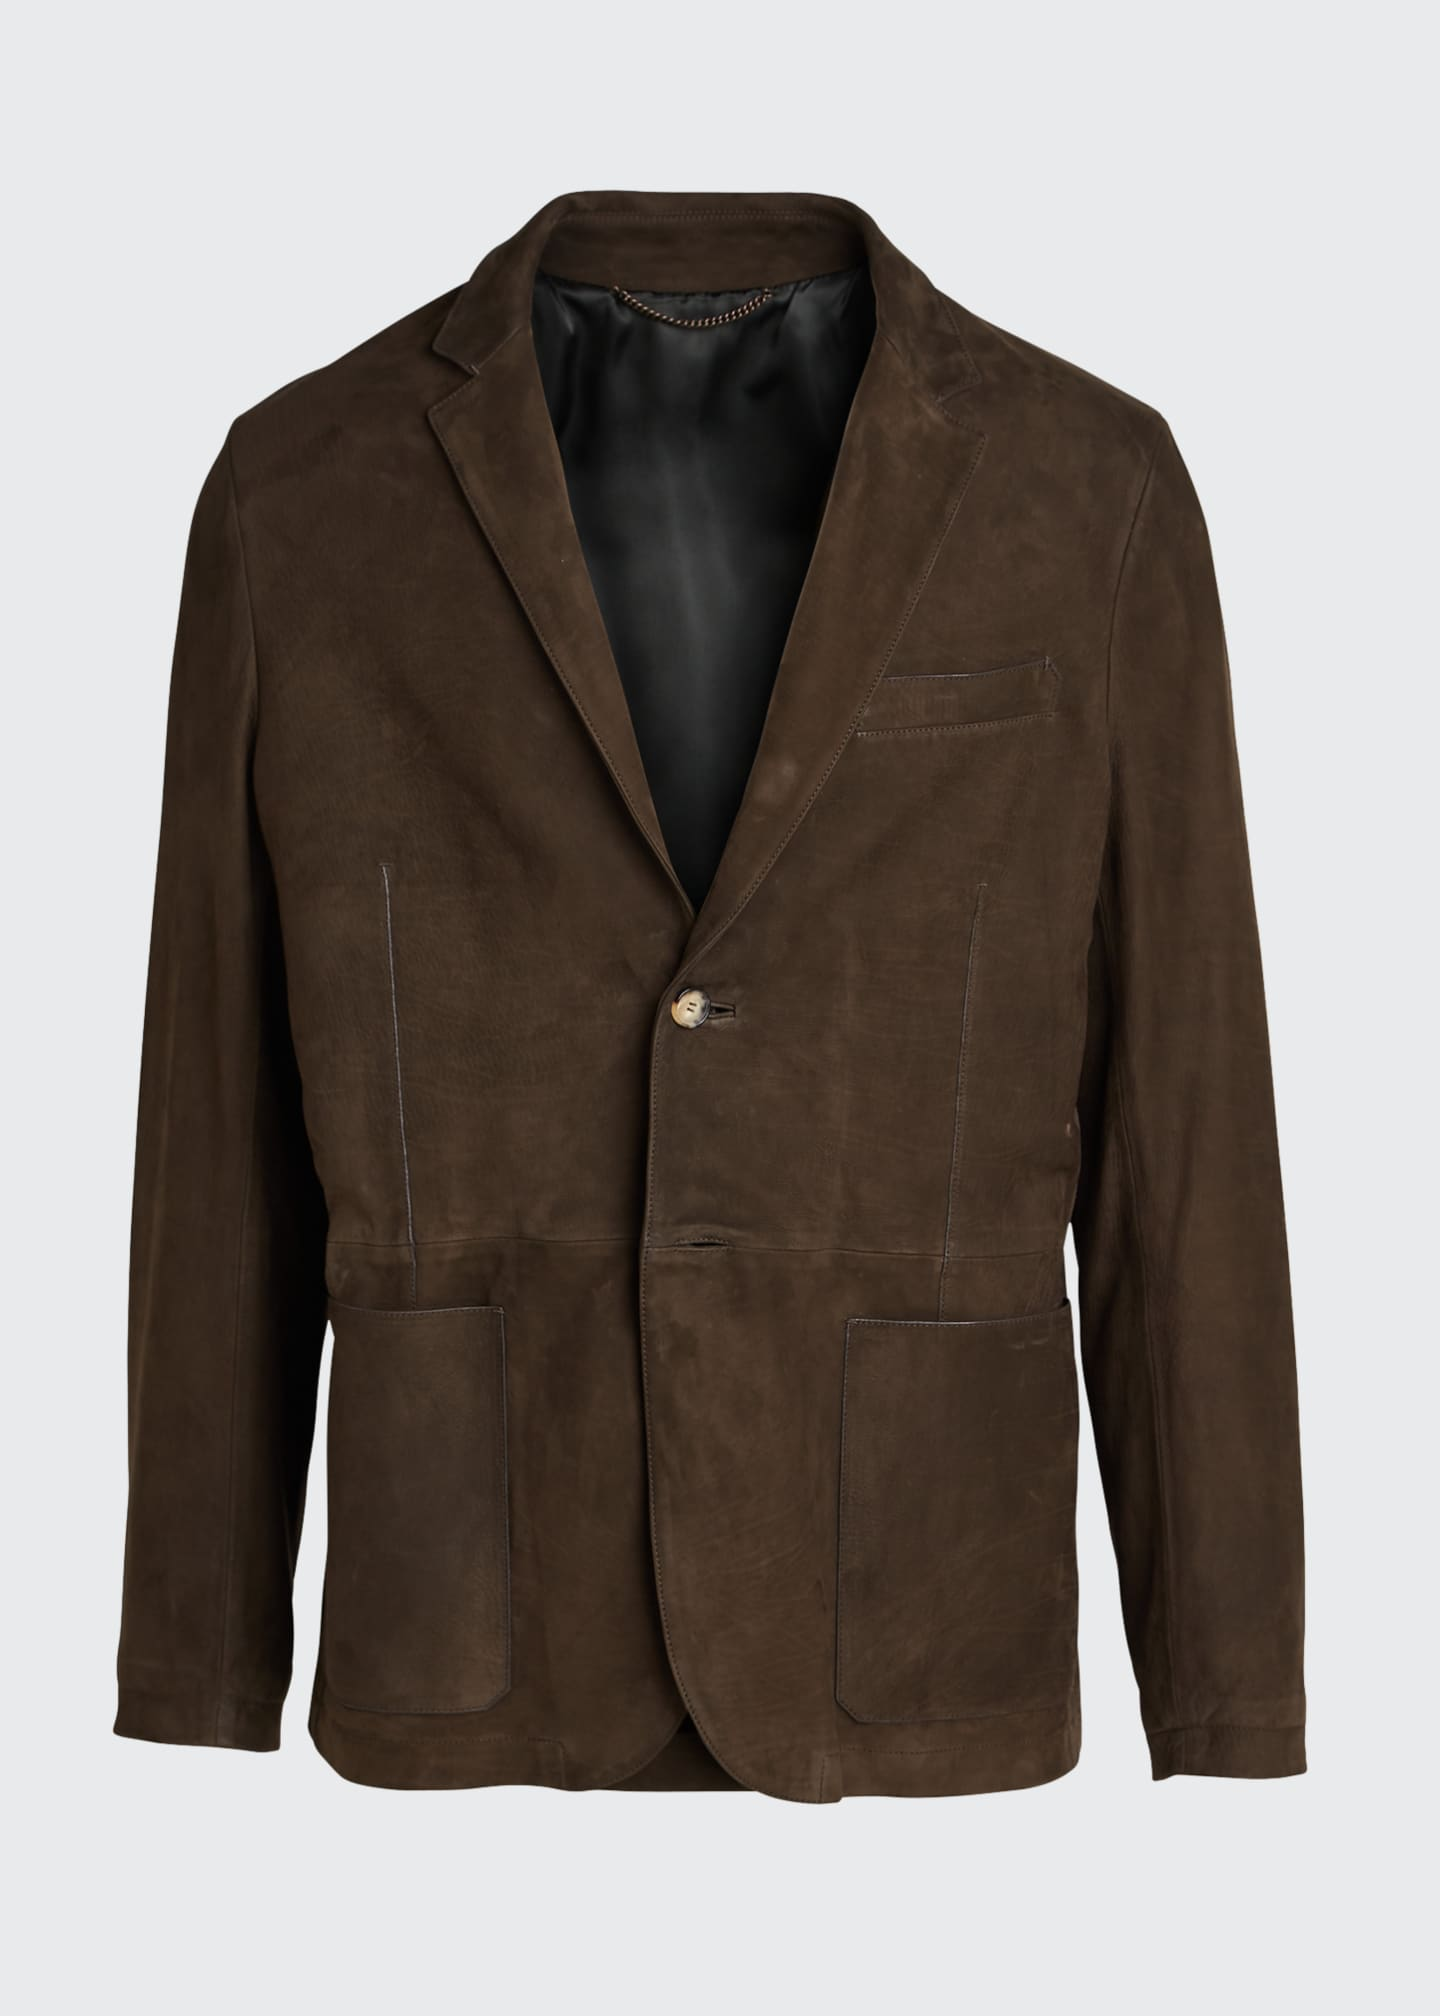 Image 5 of 5: Men's Two-Button Leather Jacket